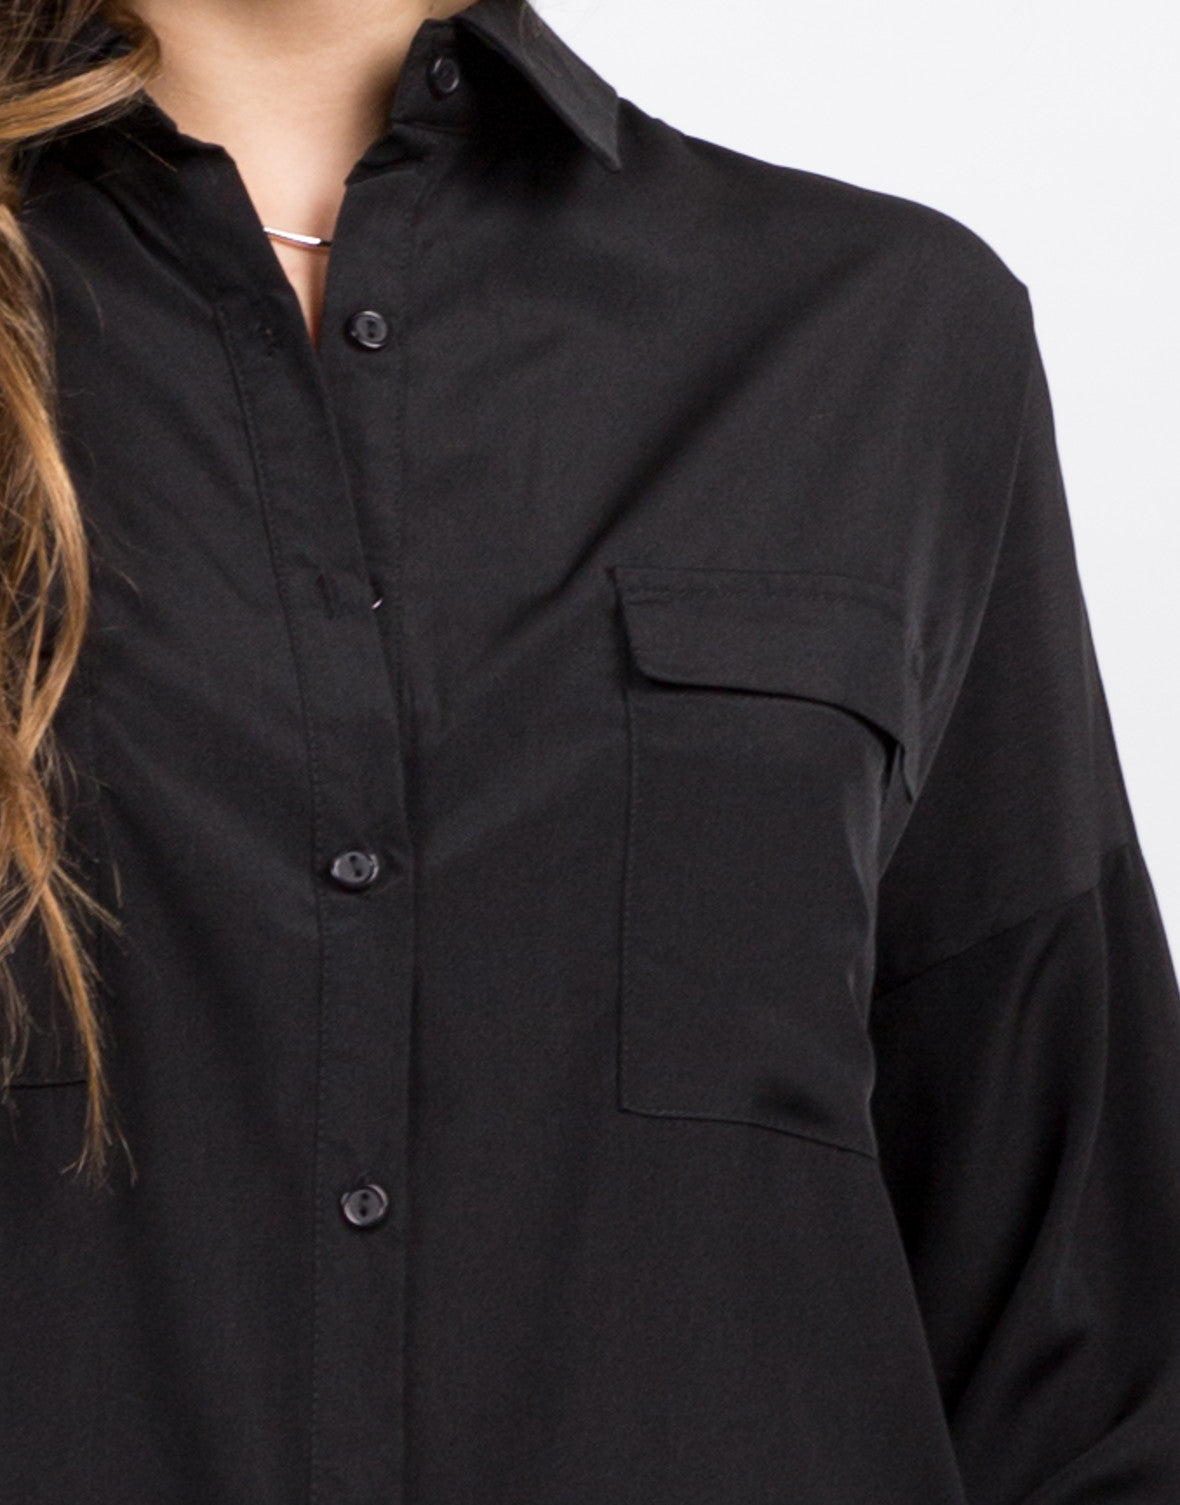 Detail of Two Front Pocket Button Up Shirt Dress